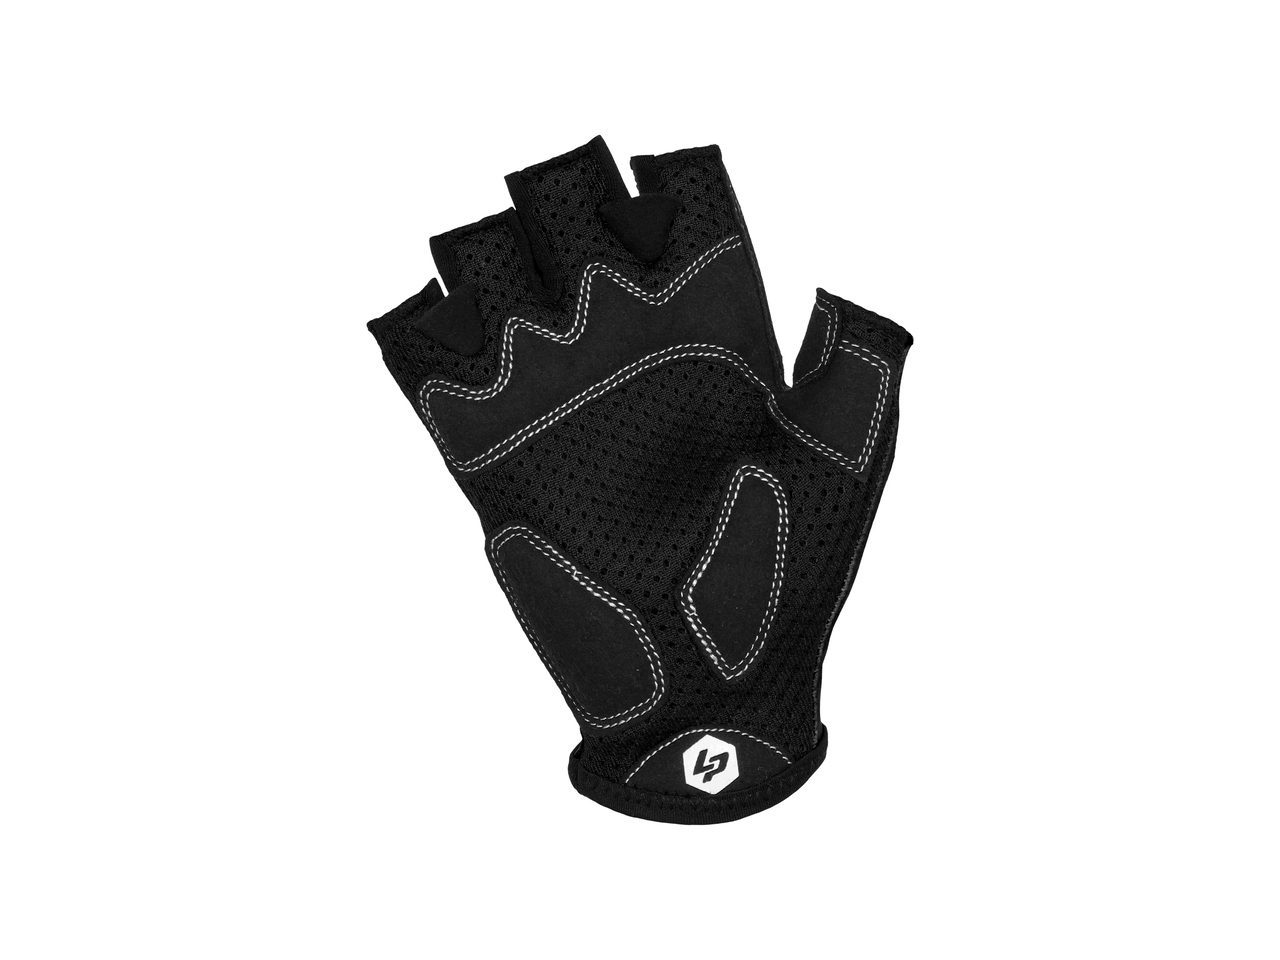 Lapierre San Remo cycling gloves - back